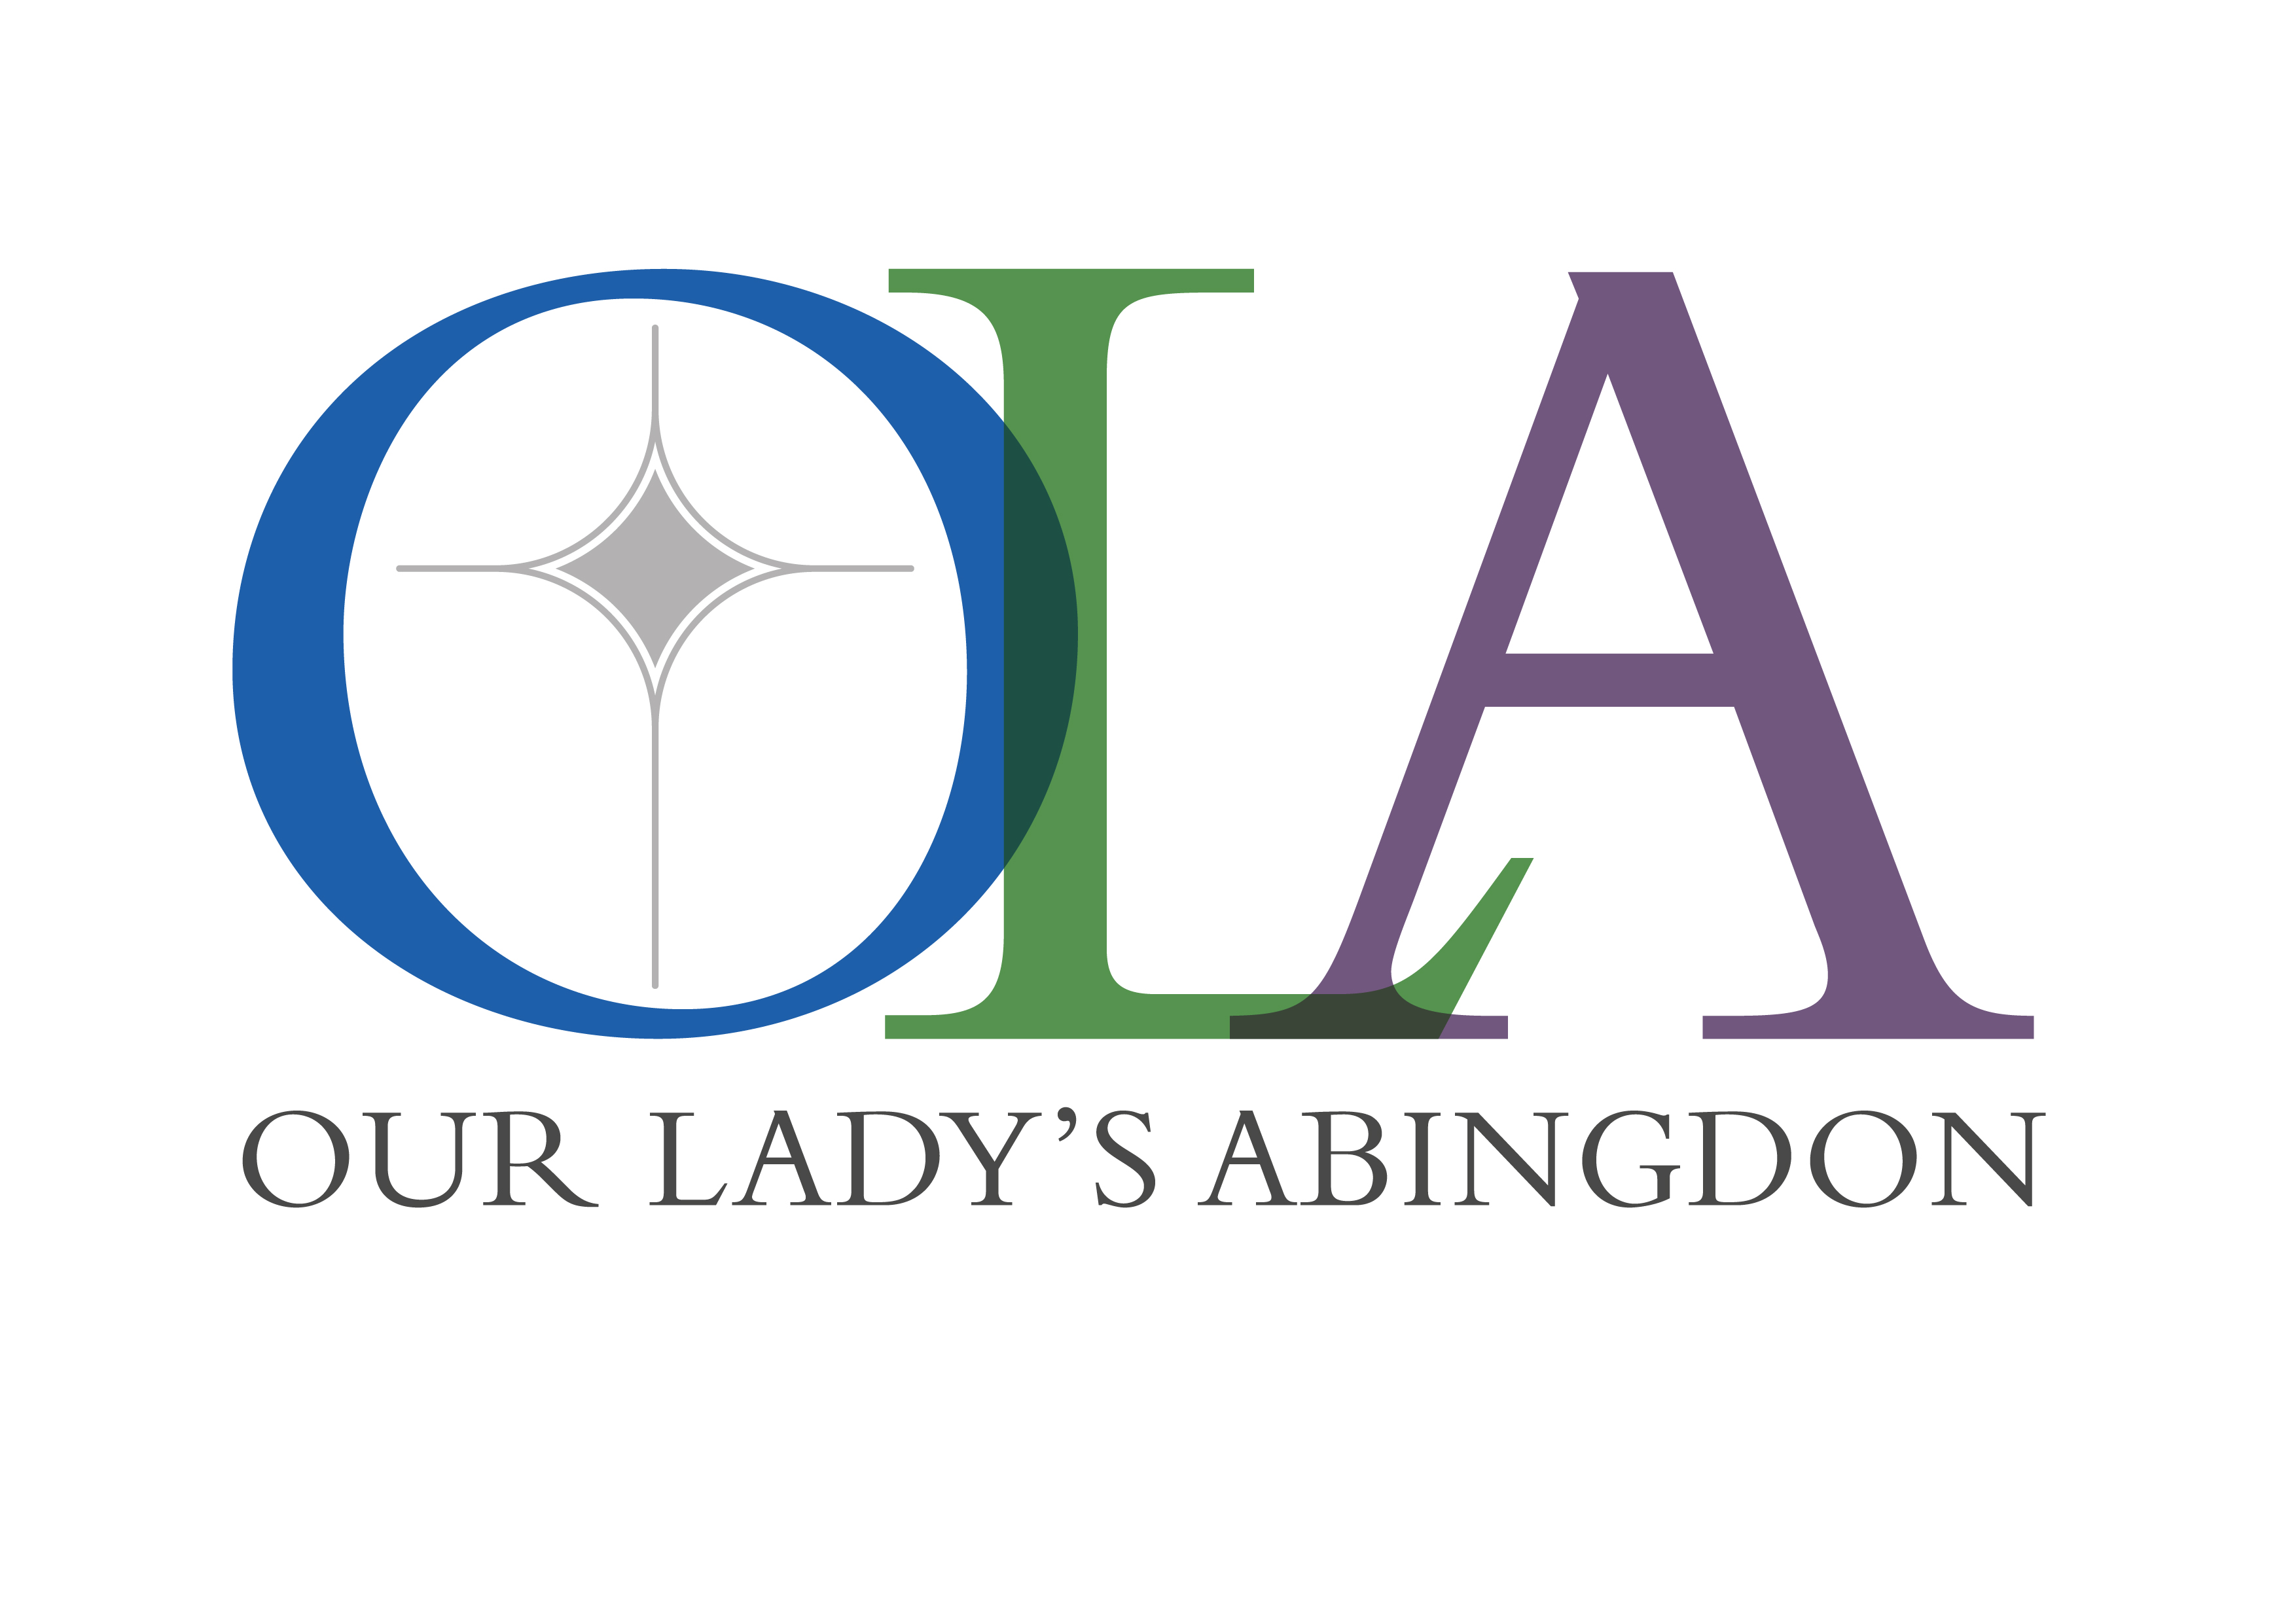 Our Lady's Abingdon emblem